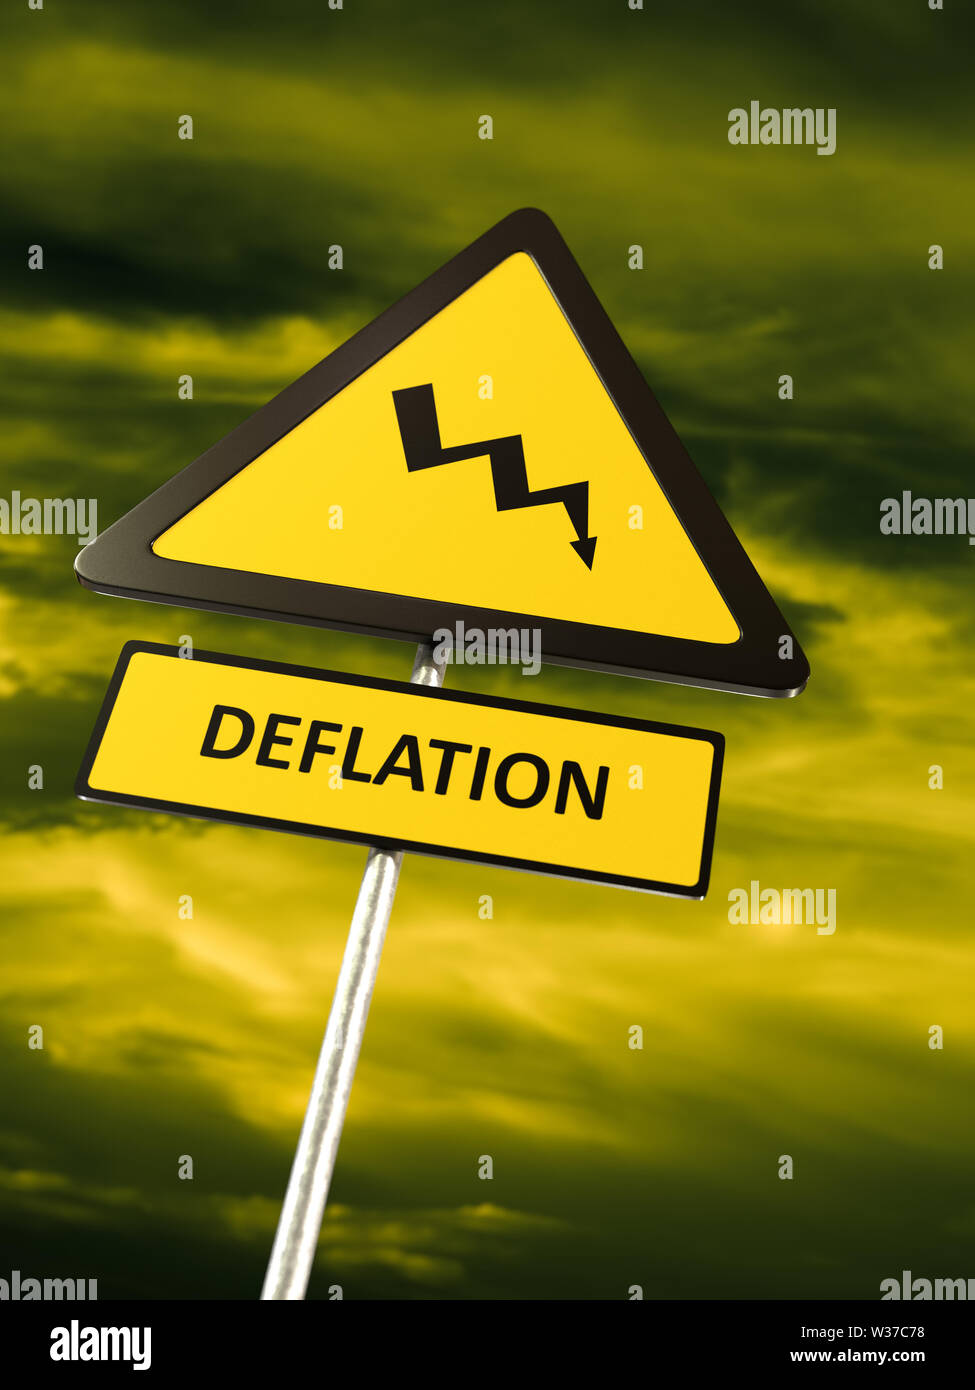 Deflation warning sign against dramatic sky - Stock Image